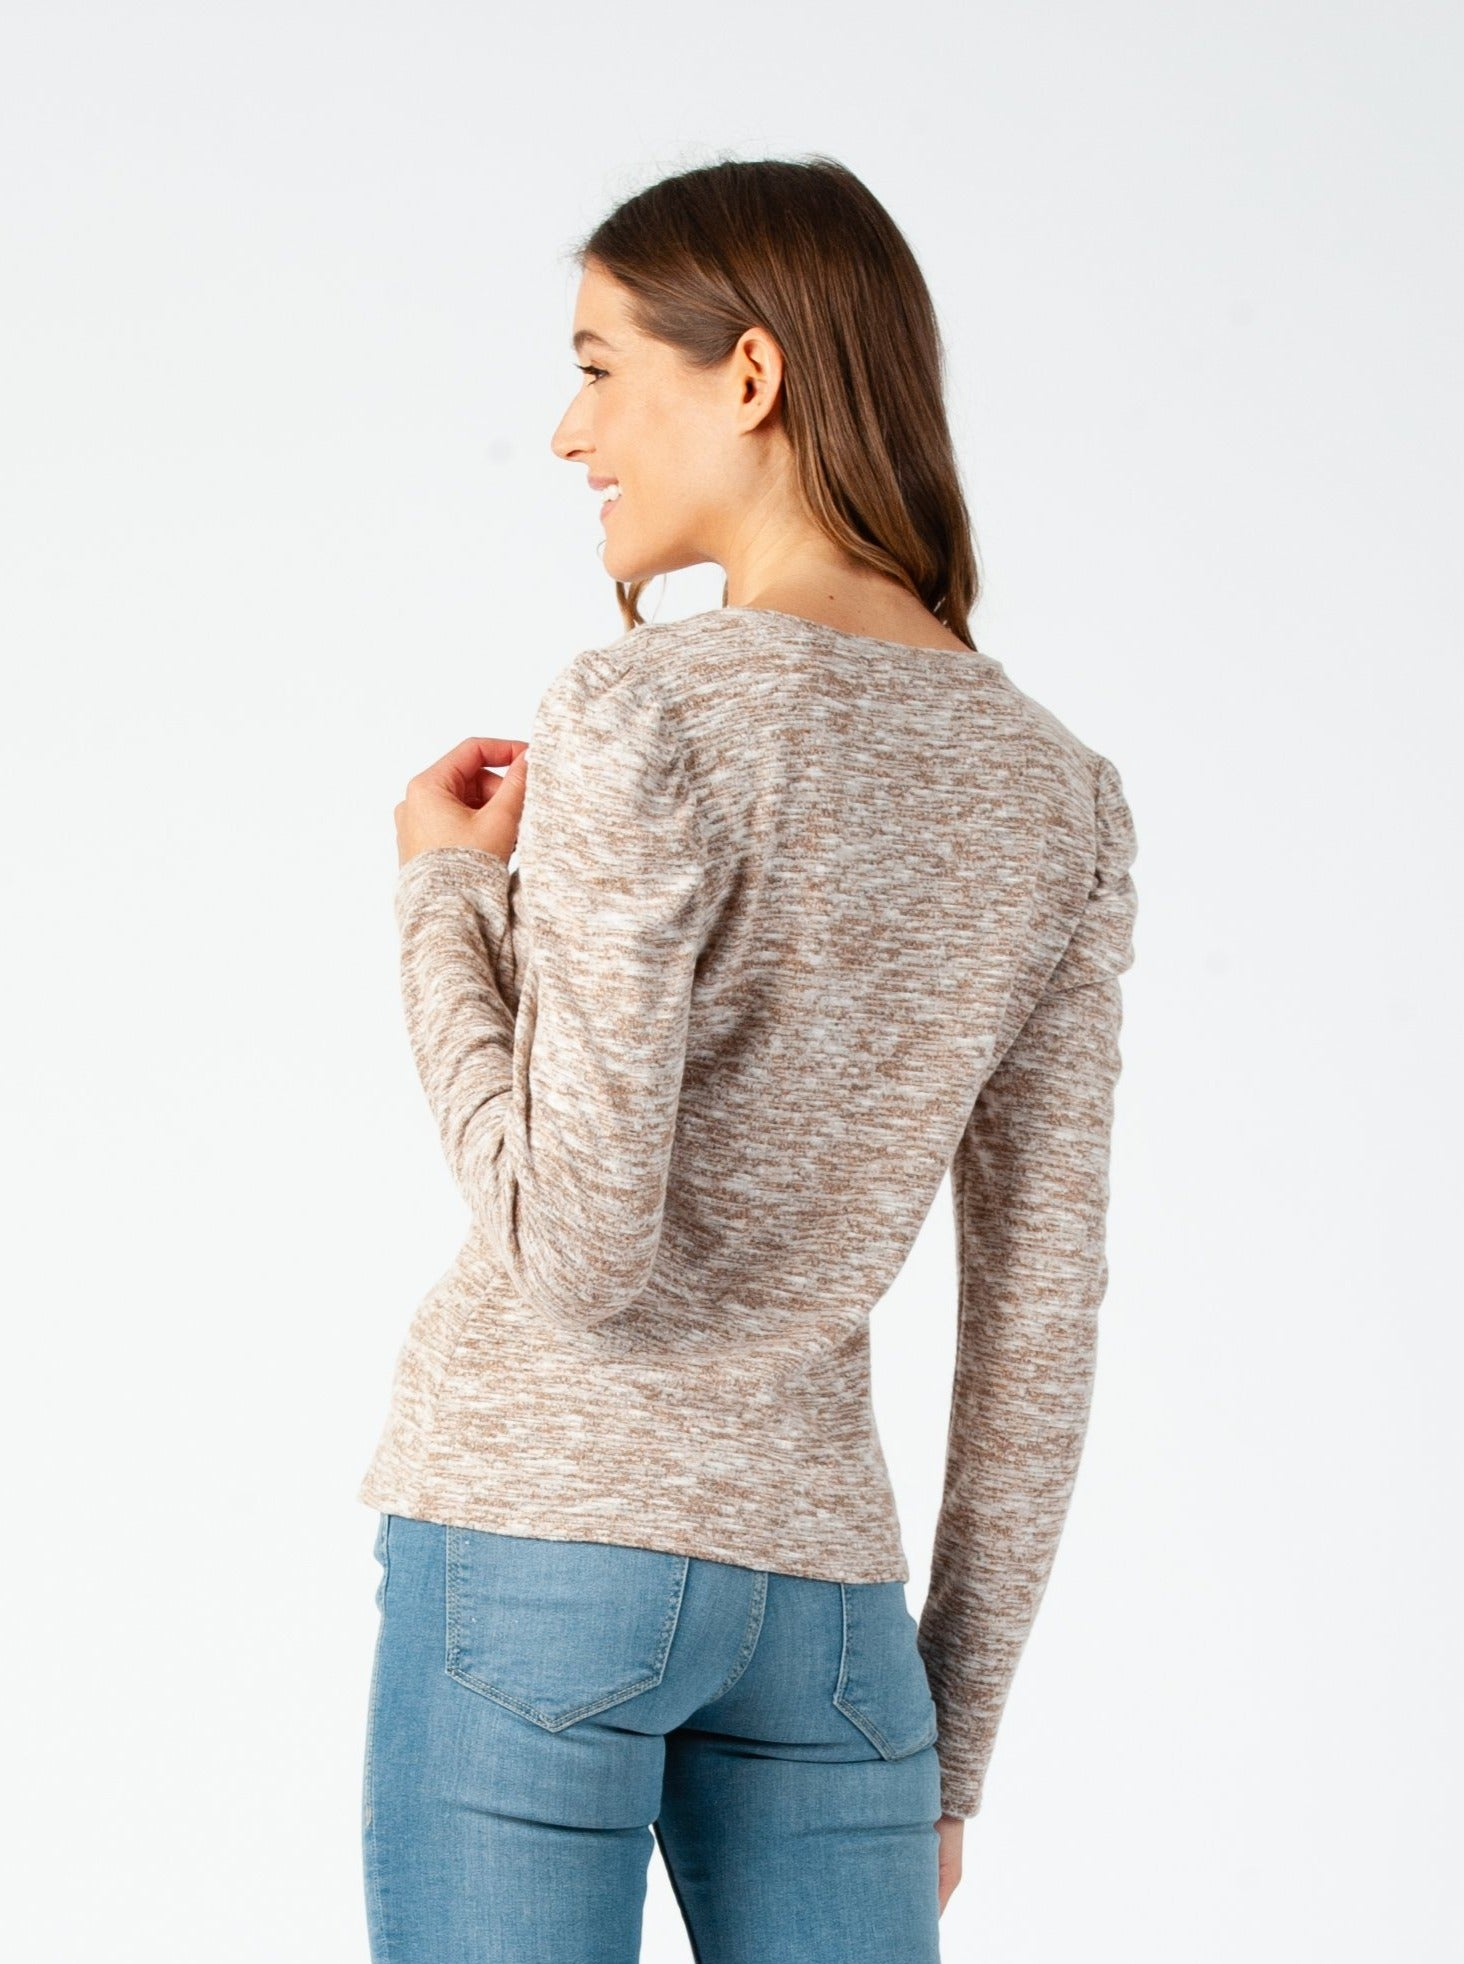 MISTY PUFF LONG SLEEVE BRUSHED HACCI TOP IN HEATHERED CHAI